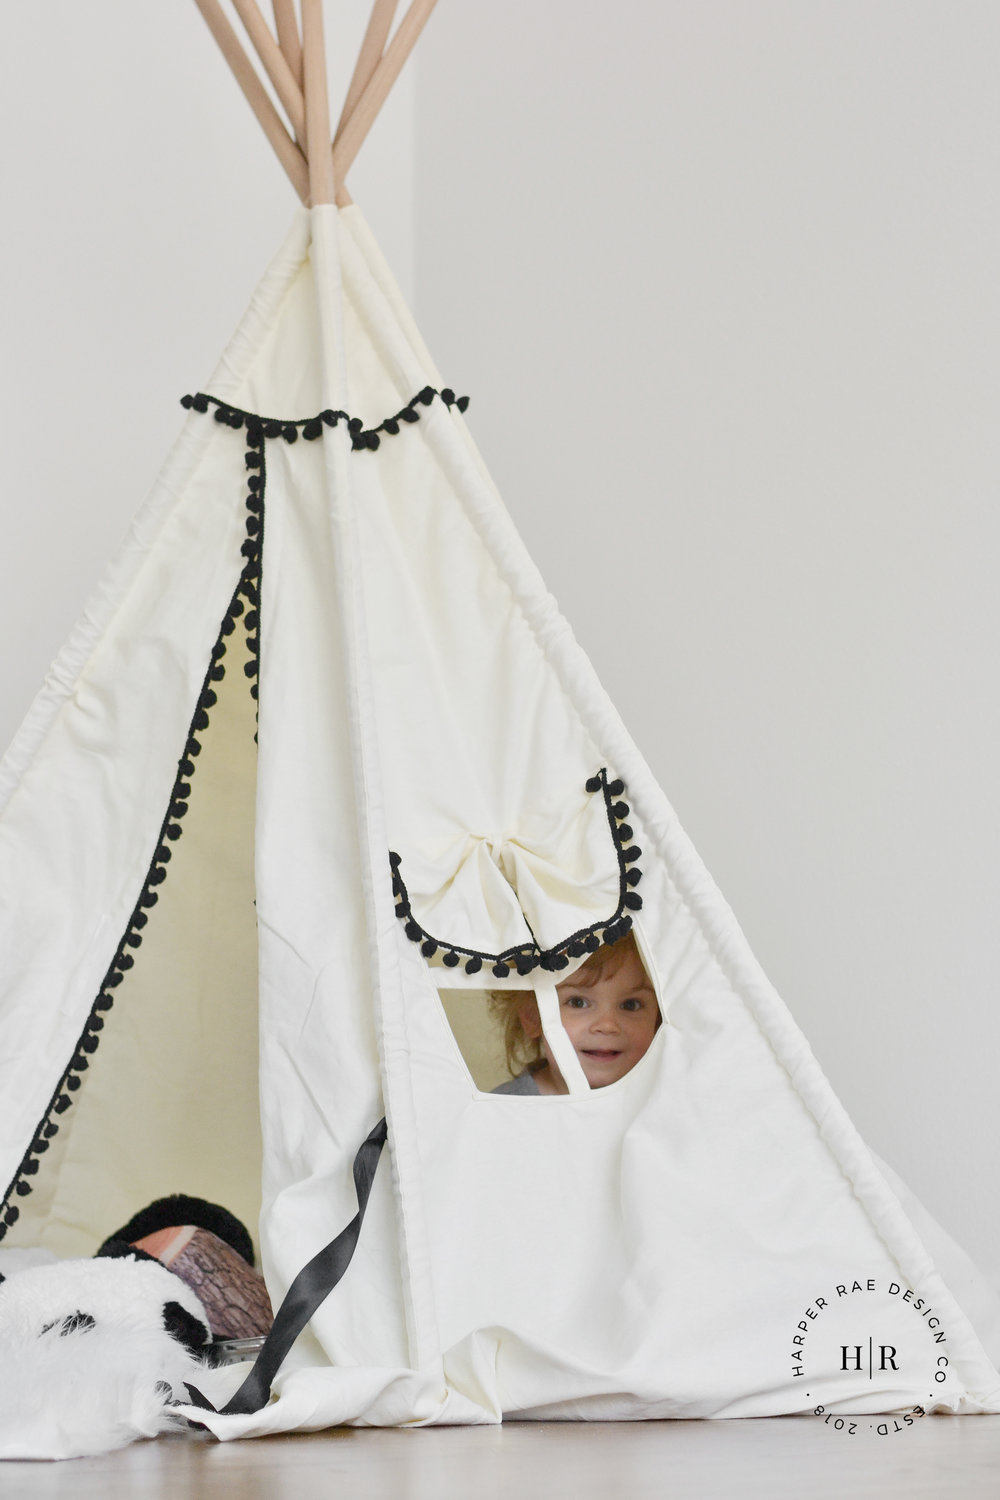 zoe inside teepee with bottom logo.jpg